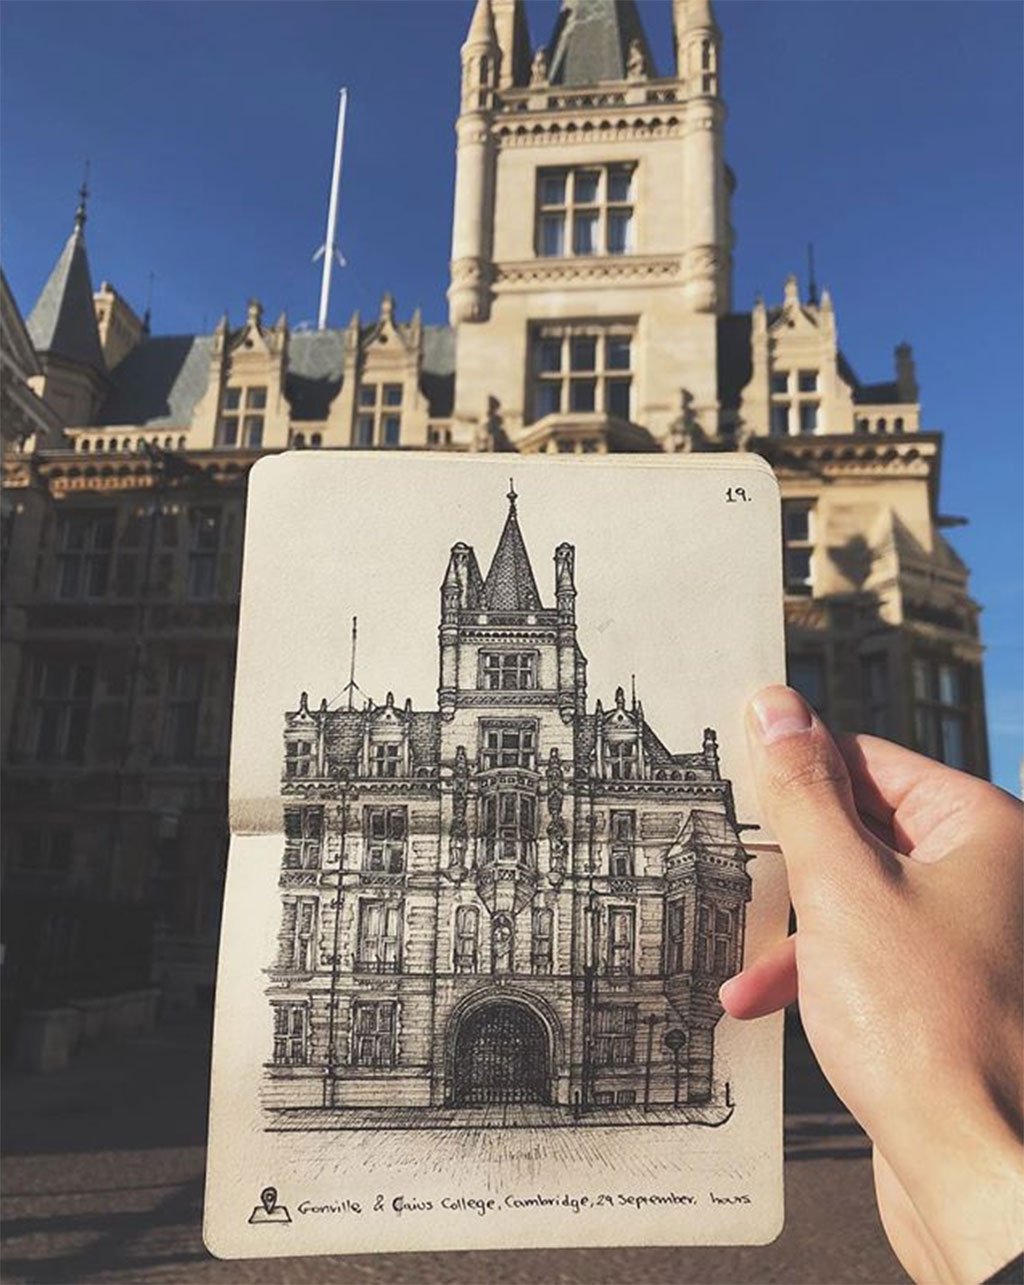 Drawing of the Gonville & Caius College in Cambridge, UK compared to the real building.